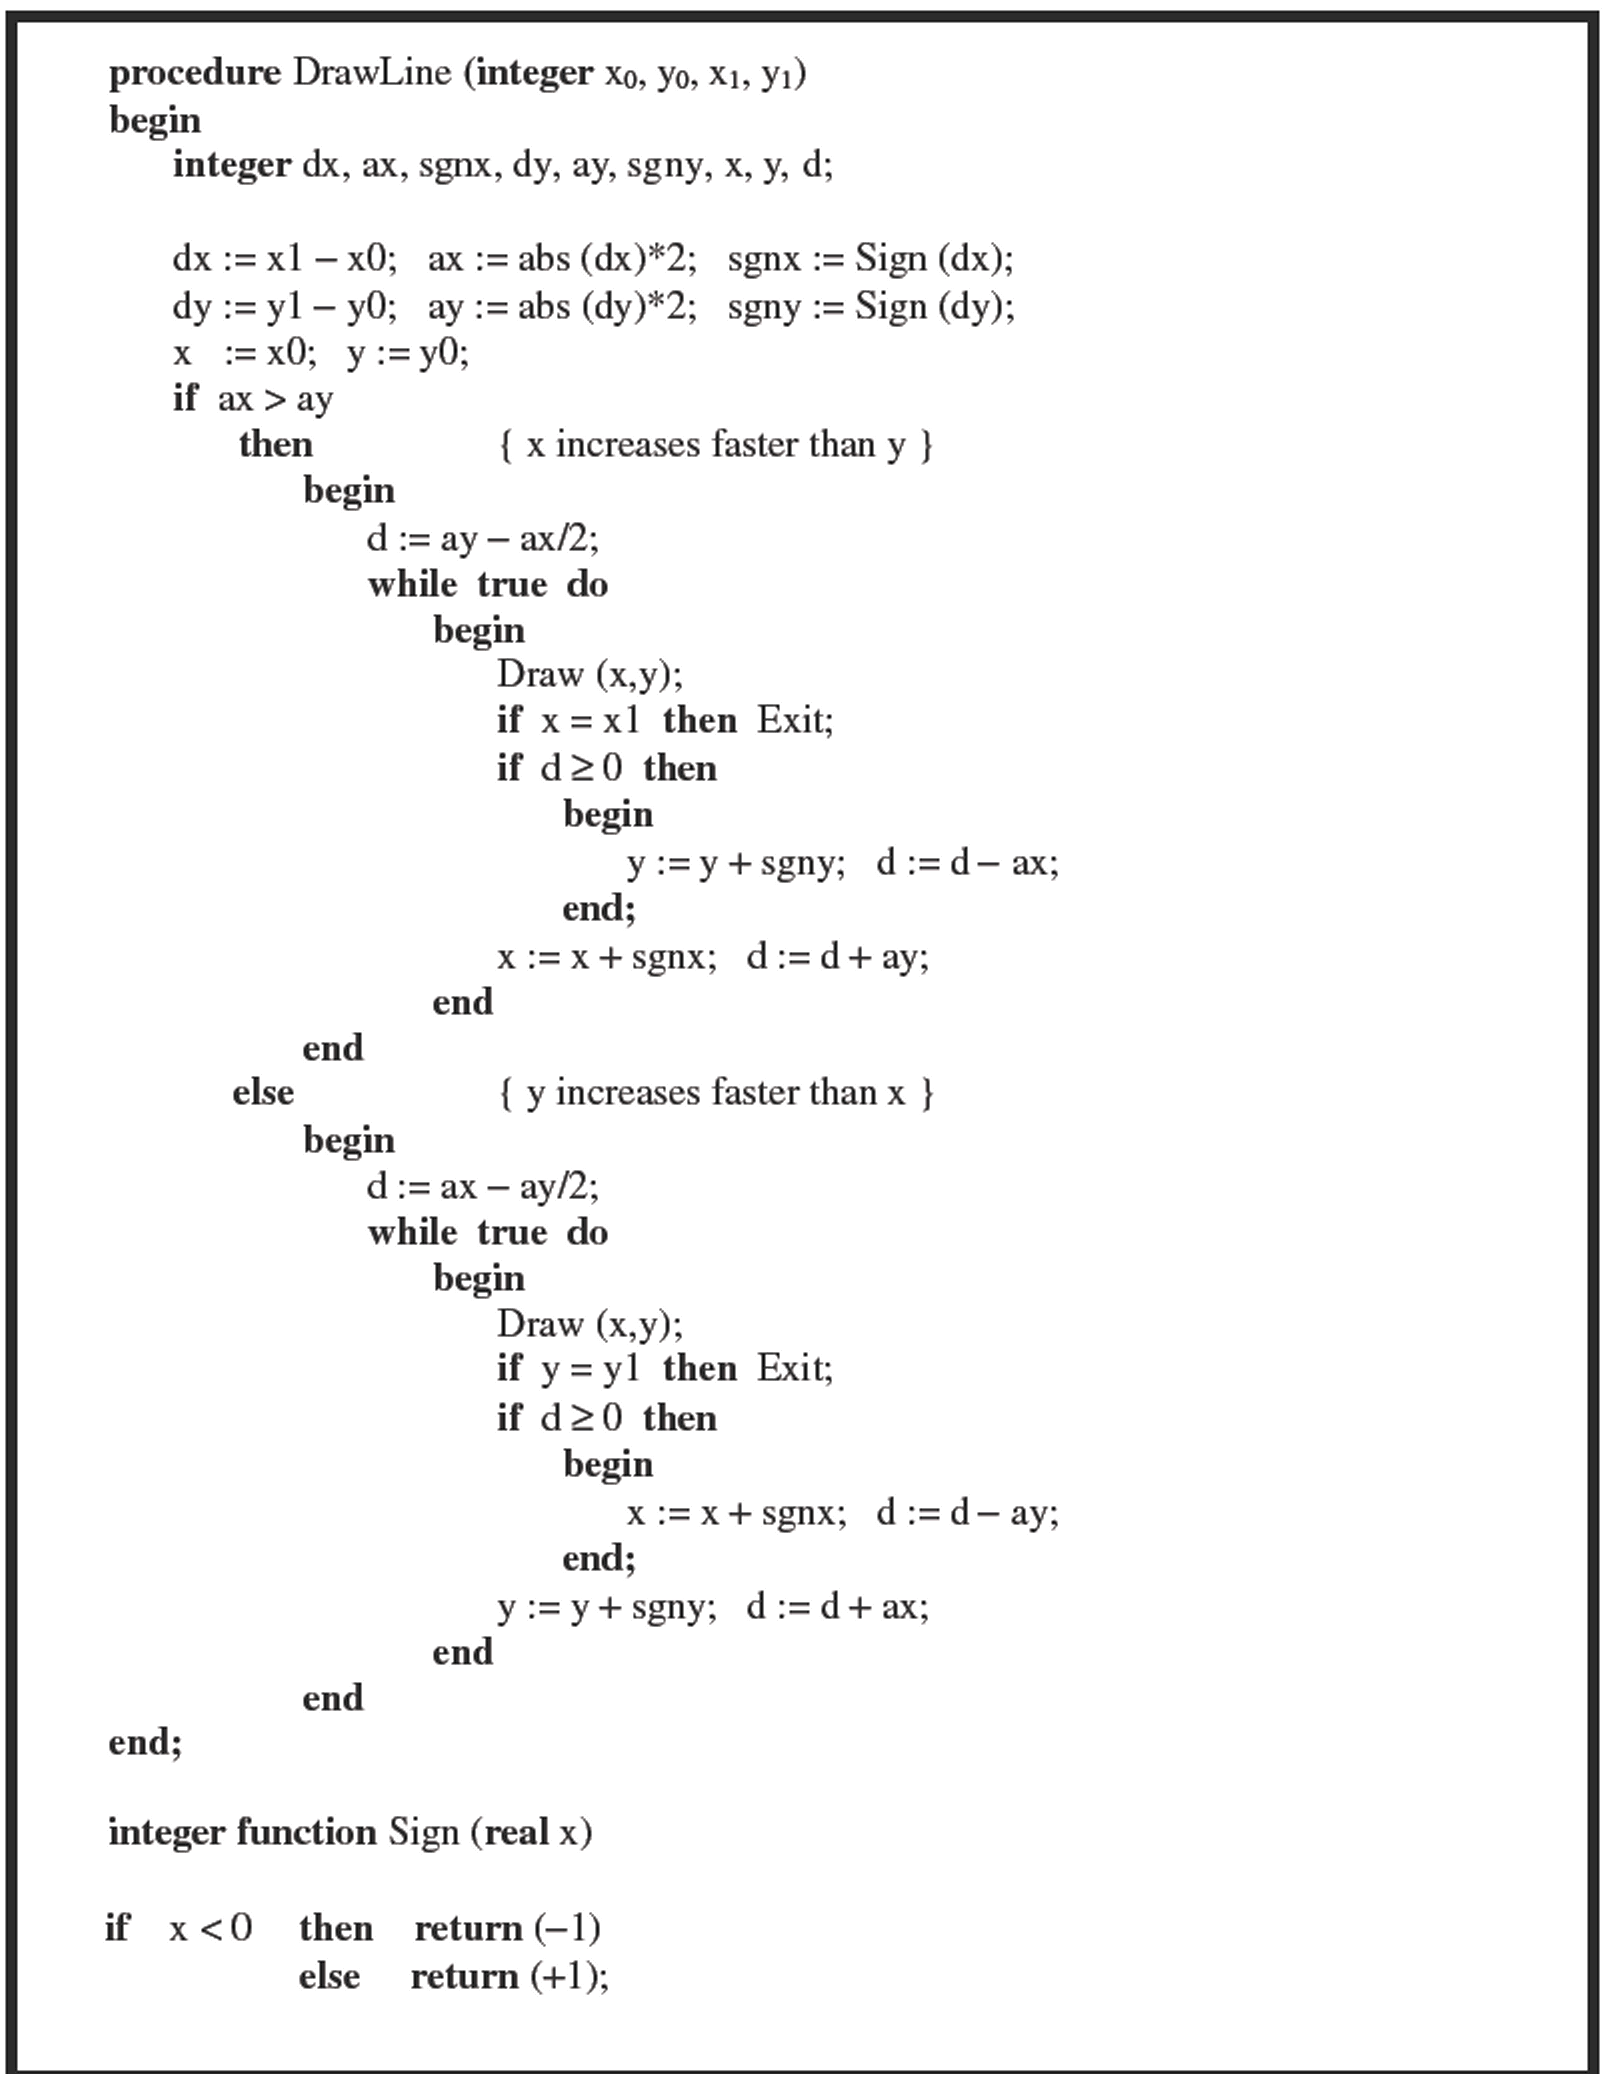 Bresenham Line Drawing Algorithm Visual Basic : Raster algorithms basic computer graphics part